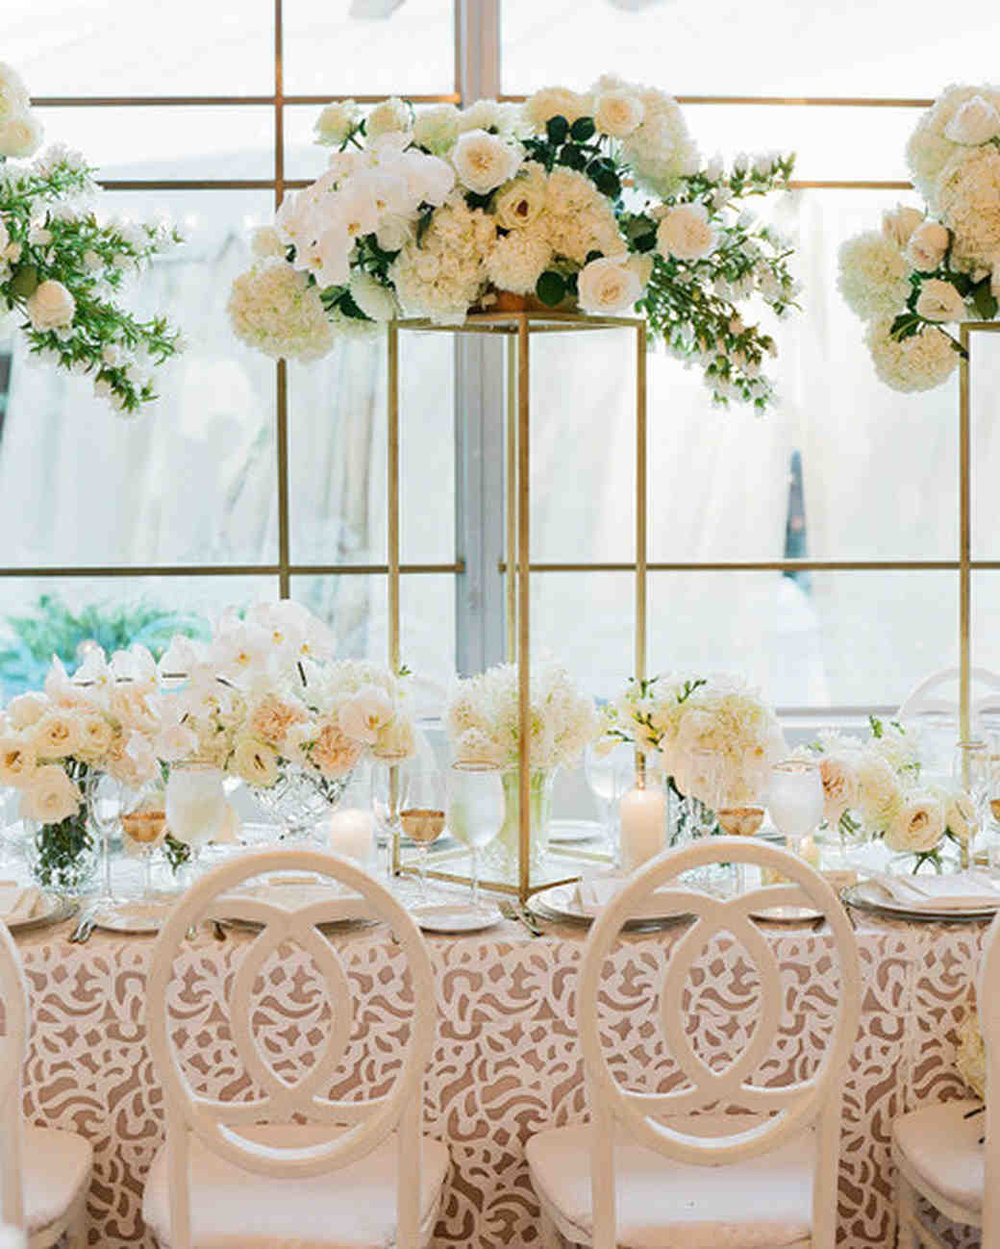 2018-trends-strawberry-milk-events-laser-cut-linens-1017_vert.jpg